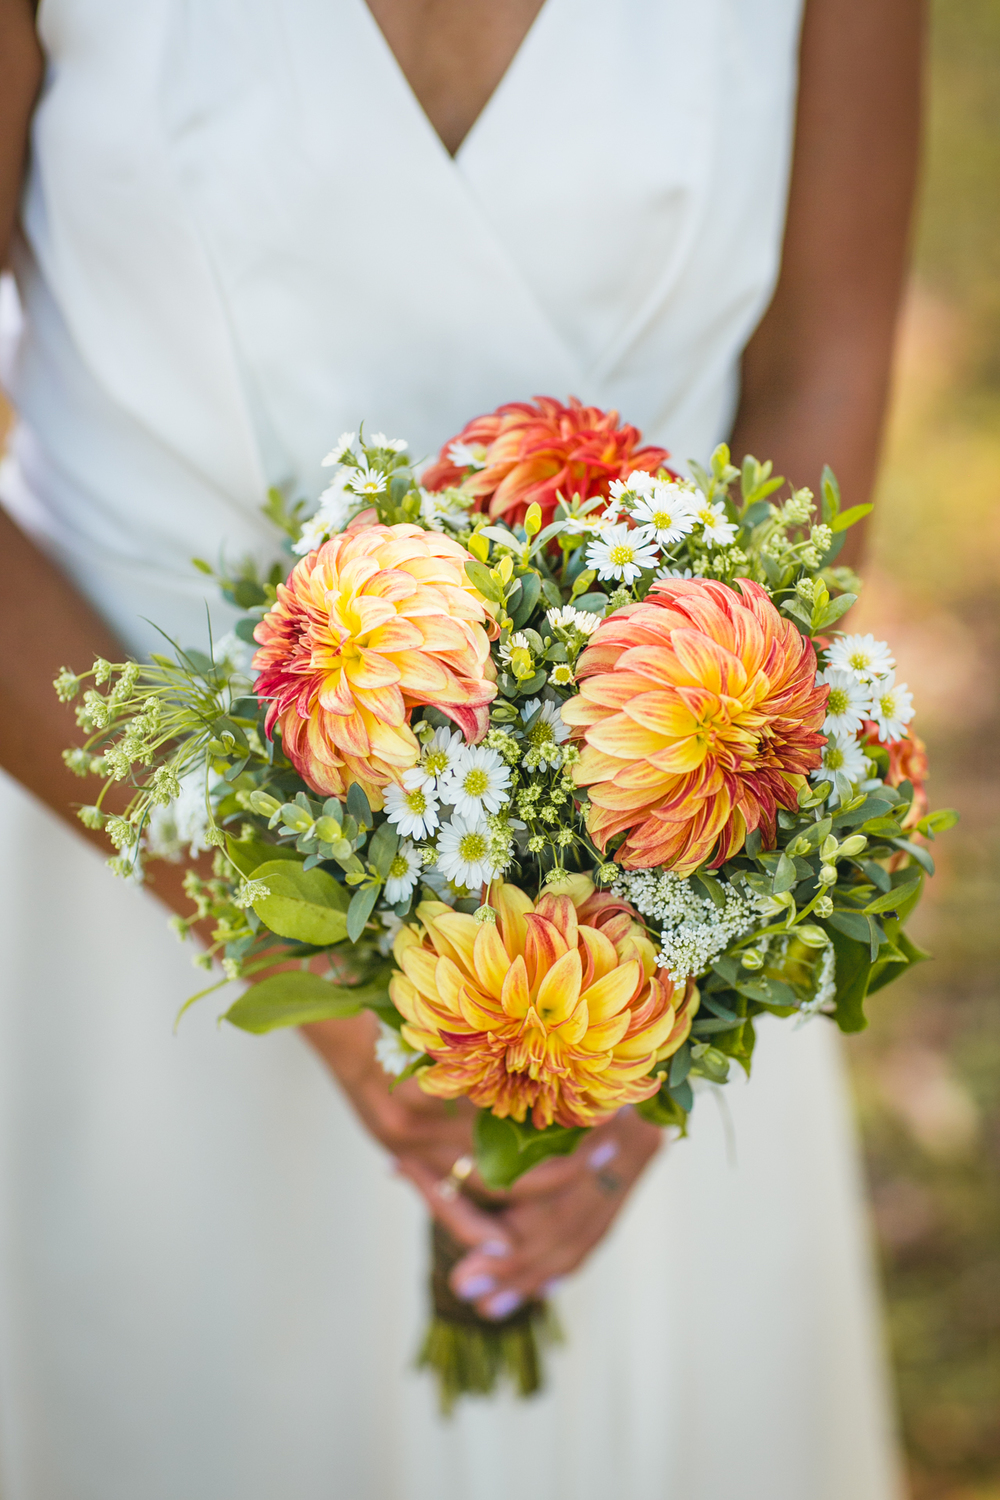 The bride holding her special arrangement floral bouquet